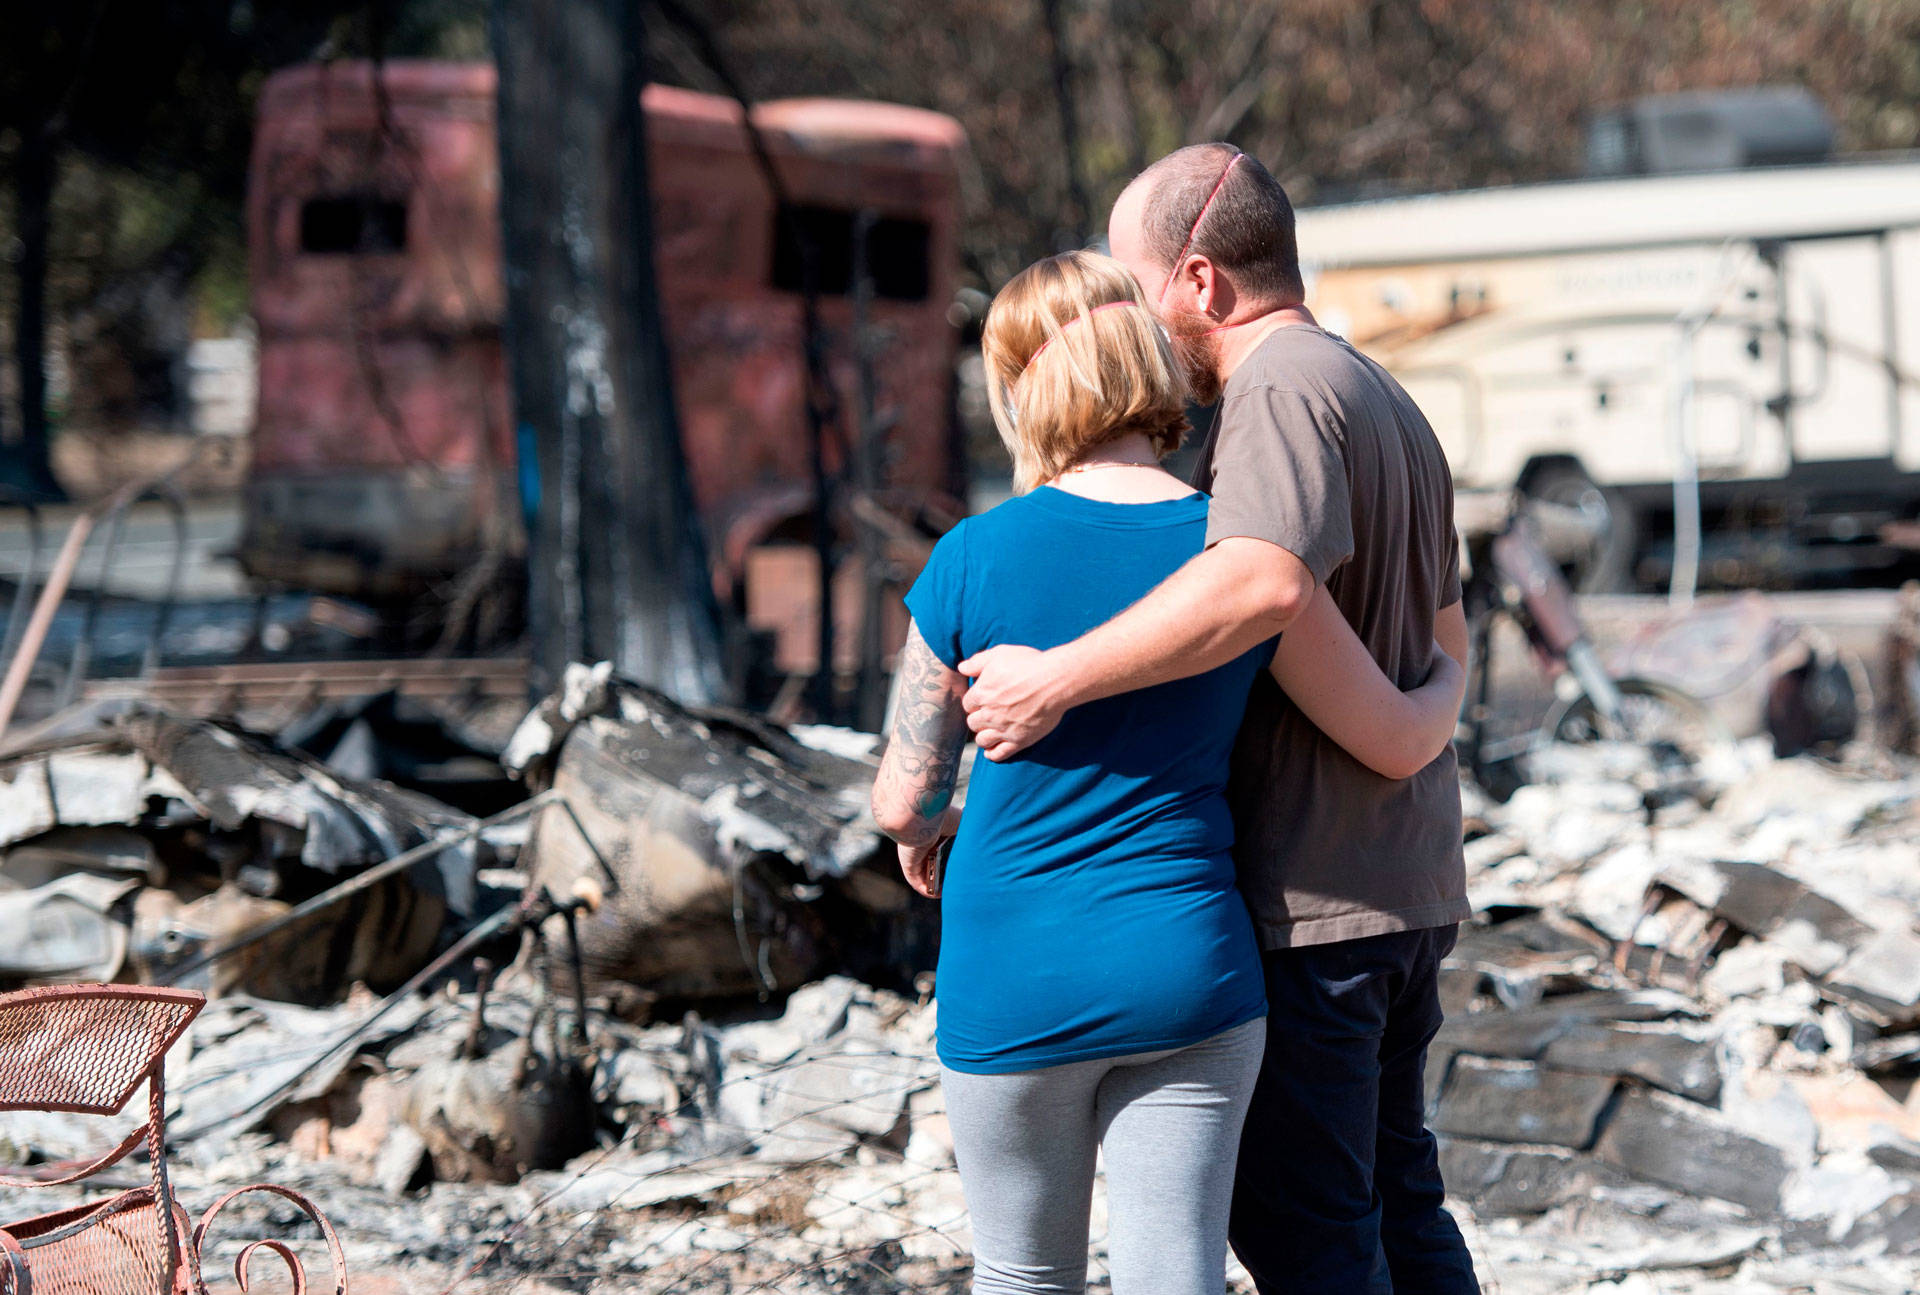 Mandi and Lane Summit embrace in front of their fire-destroyed home in the Mendocino County community of Redwood Valley on October 15, 2017. Cal Fire determined the Redwood Fire started in two locations and was caused by trees or parts of trees falling onto PG&E power lines. JOSH EDELSON/AFP/Getty Images